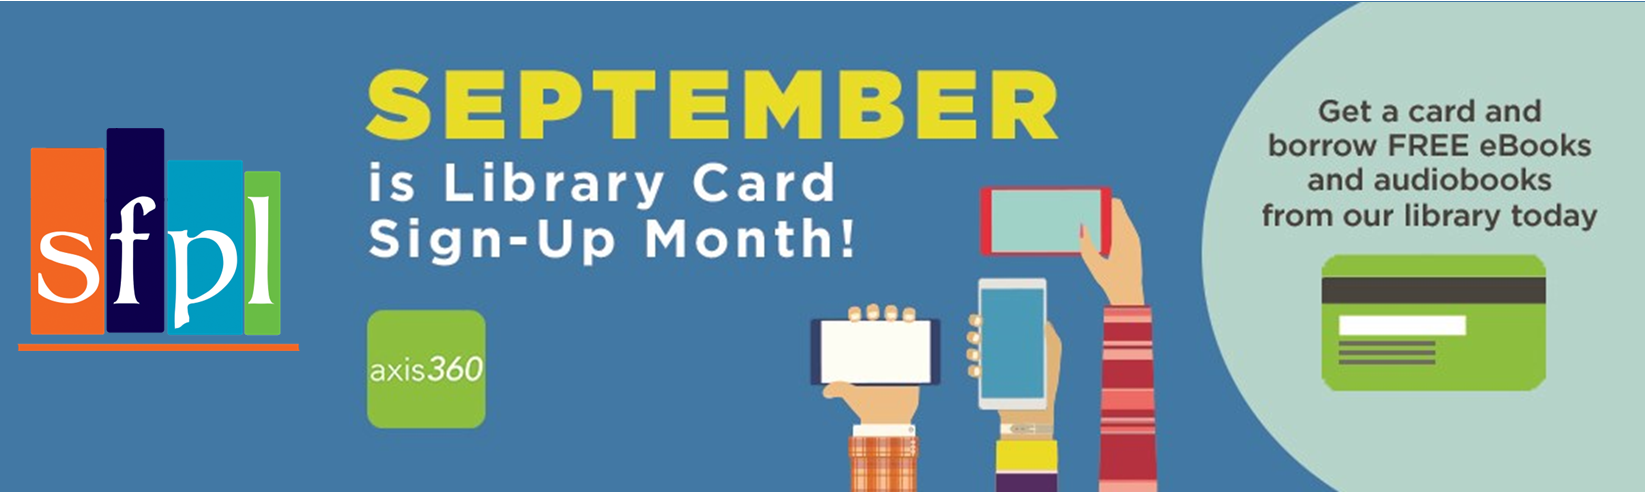 September is National Library Card Sign Up Month! Get a card to borrow FREE ebooks from your library!